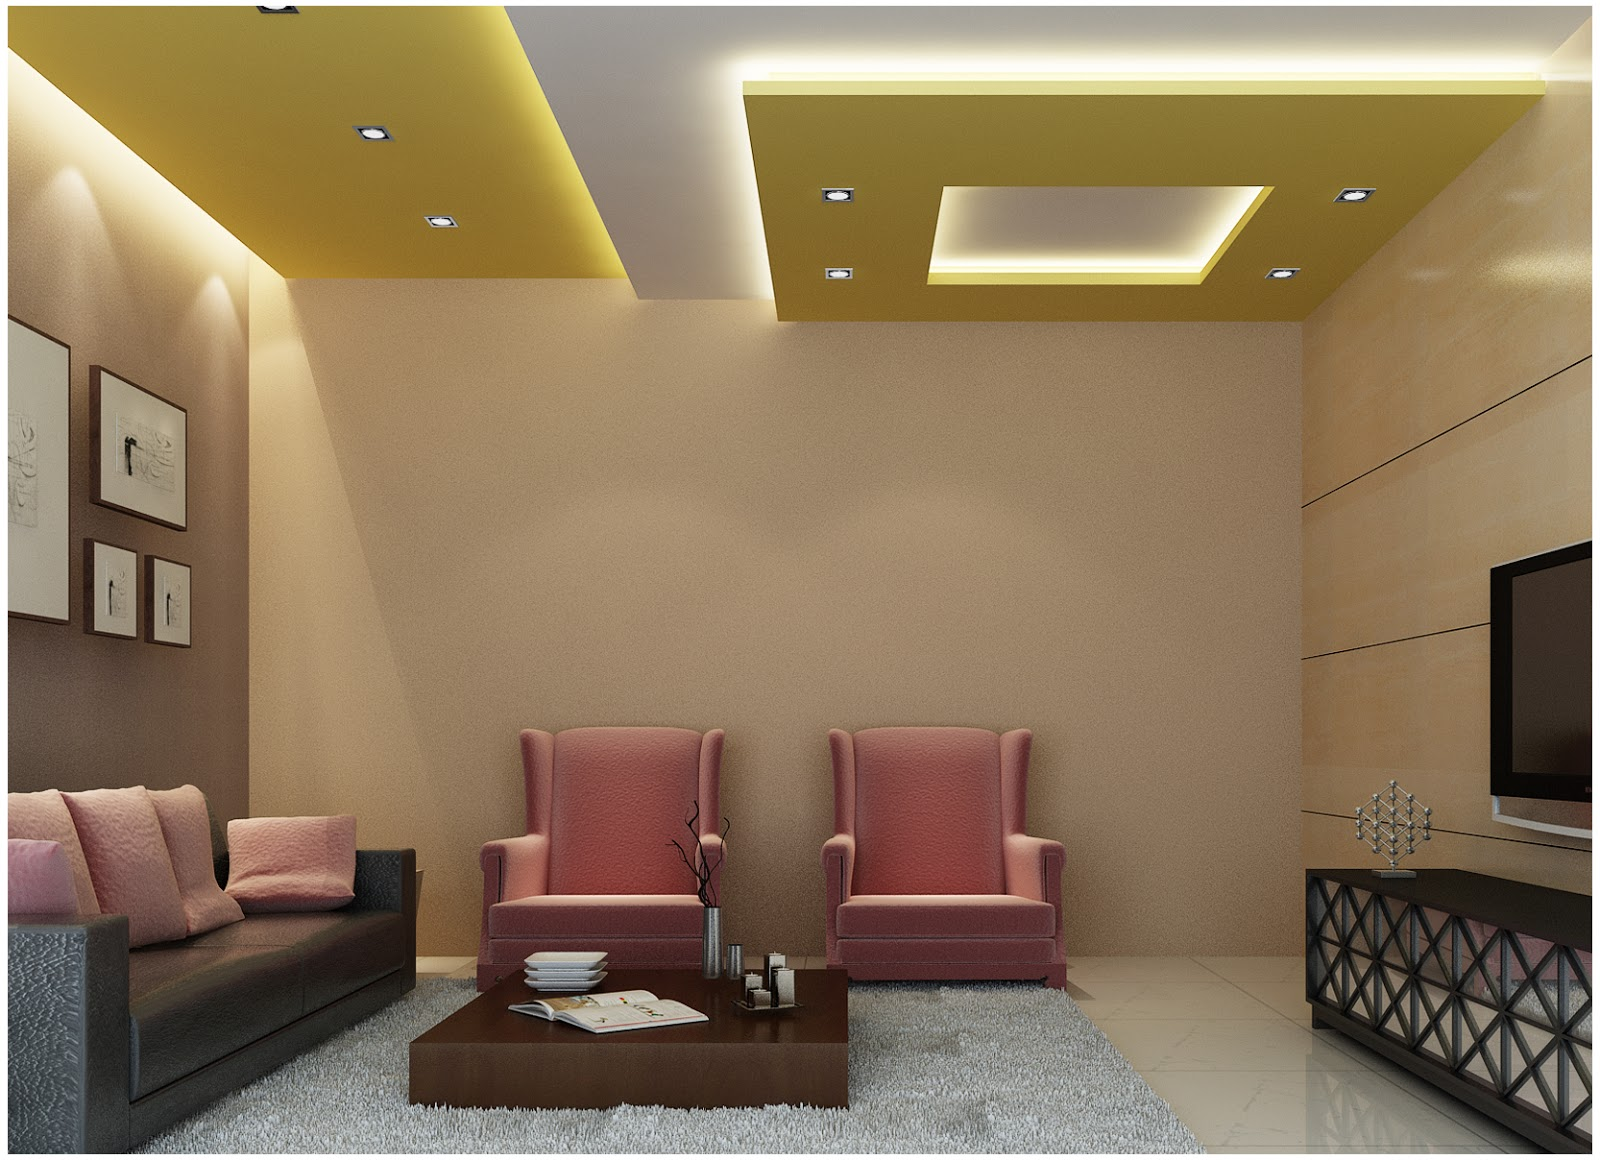 Latest plaster of paris designs joy studio design for Wall ceiling pop designs